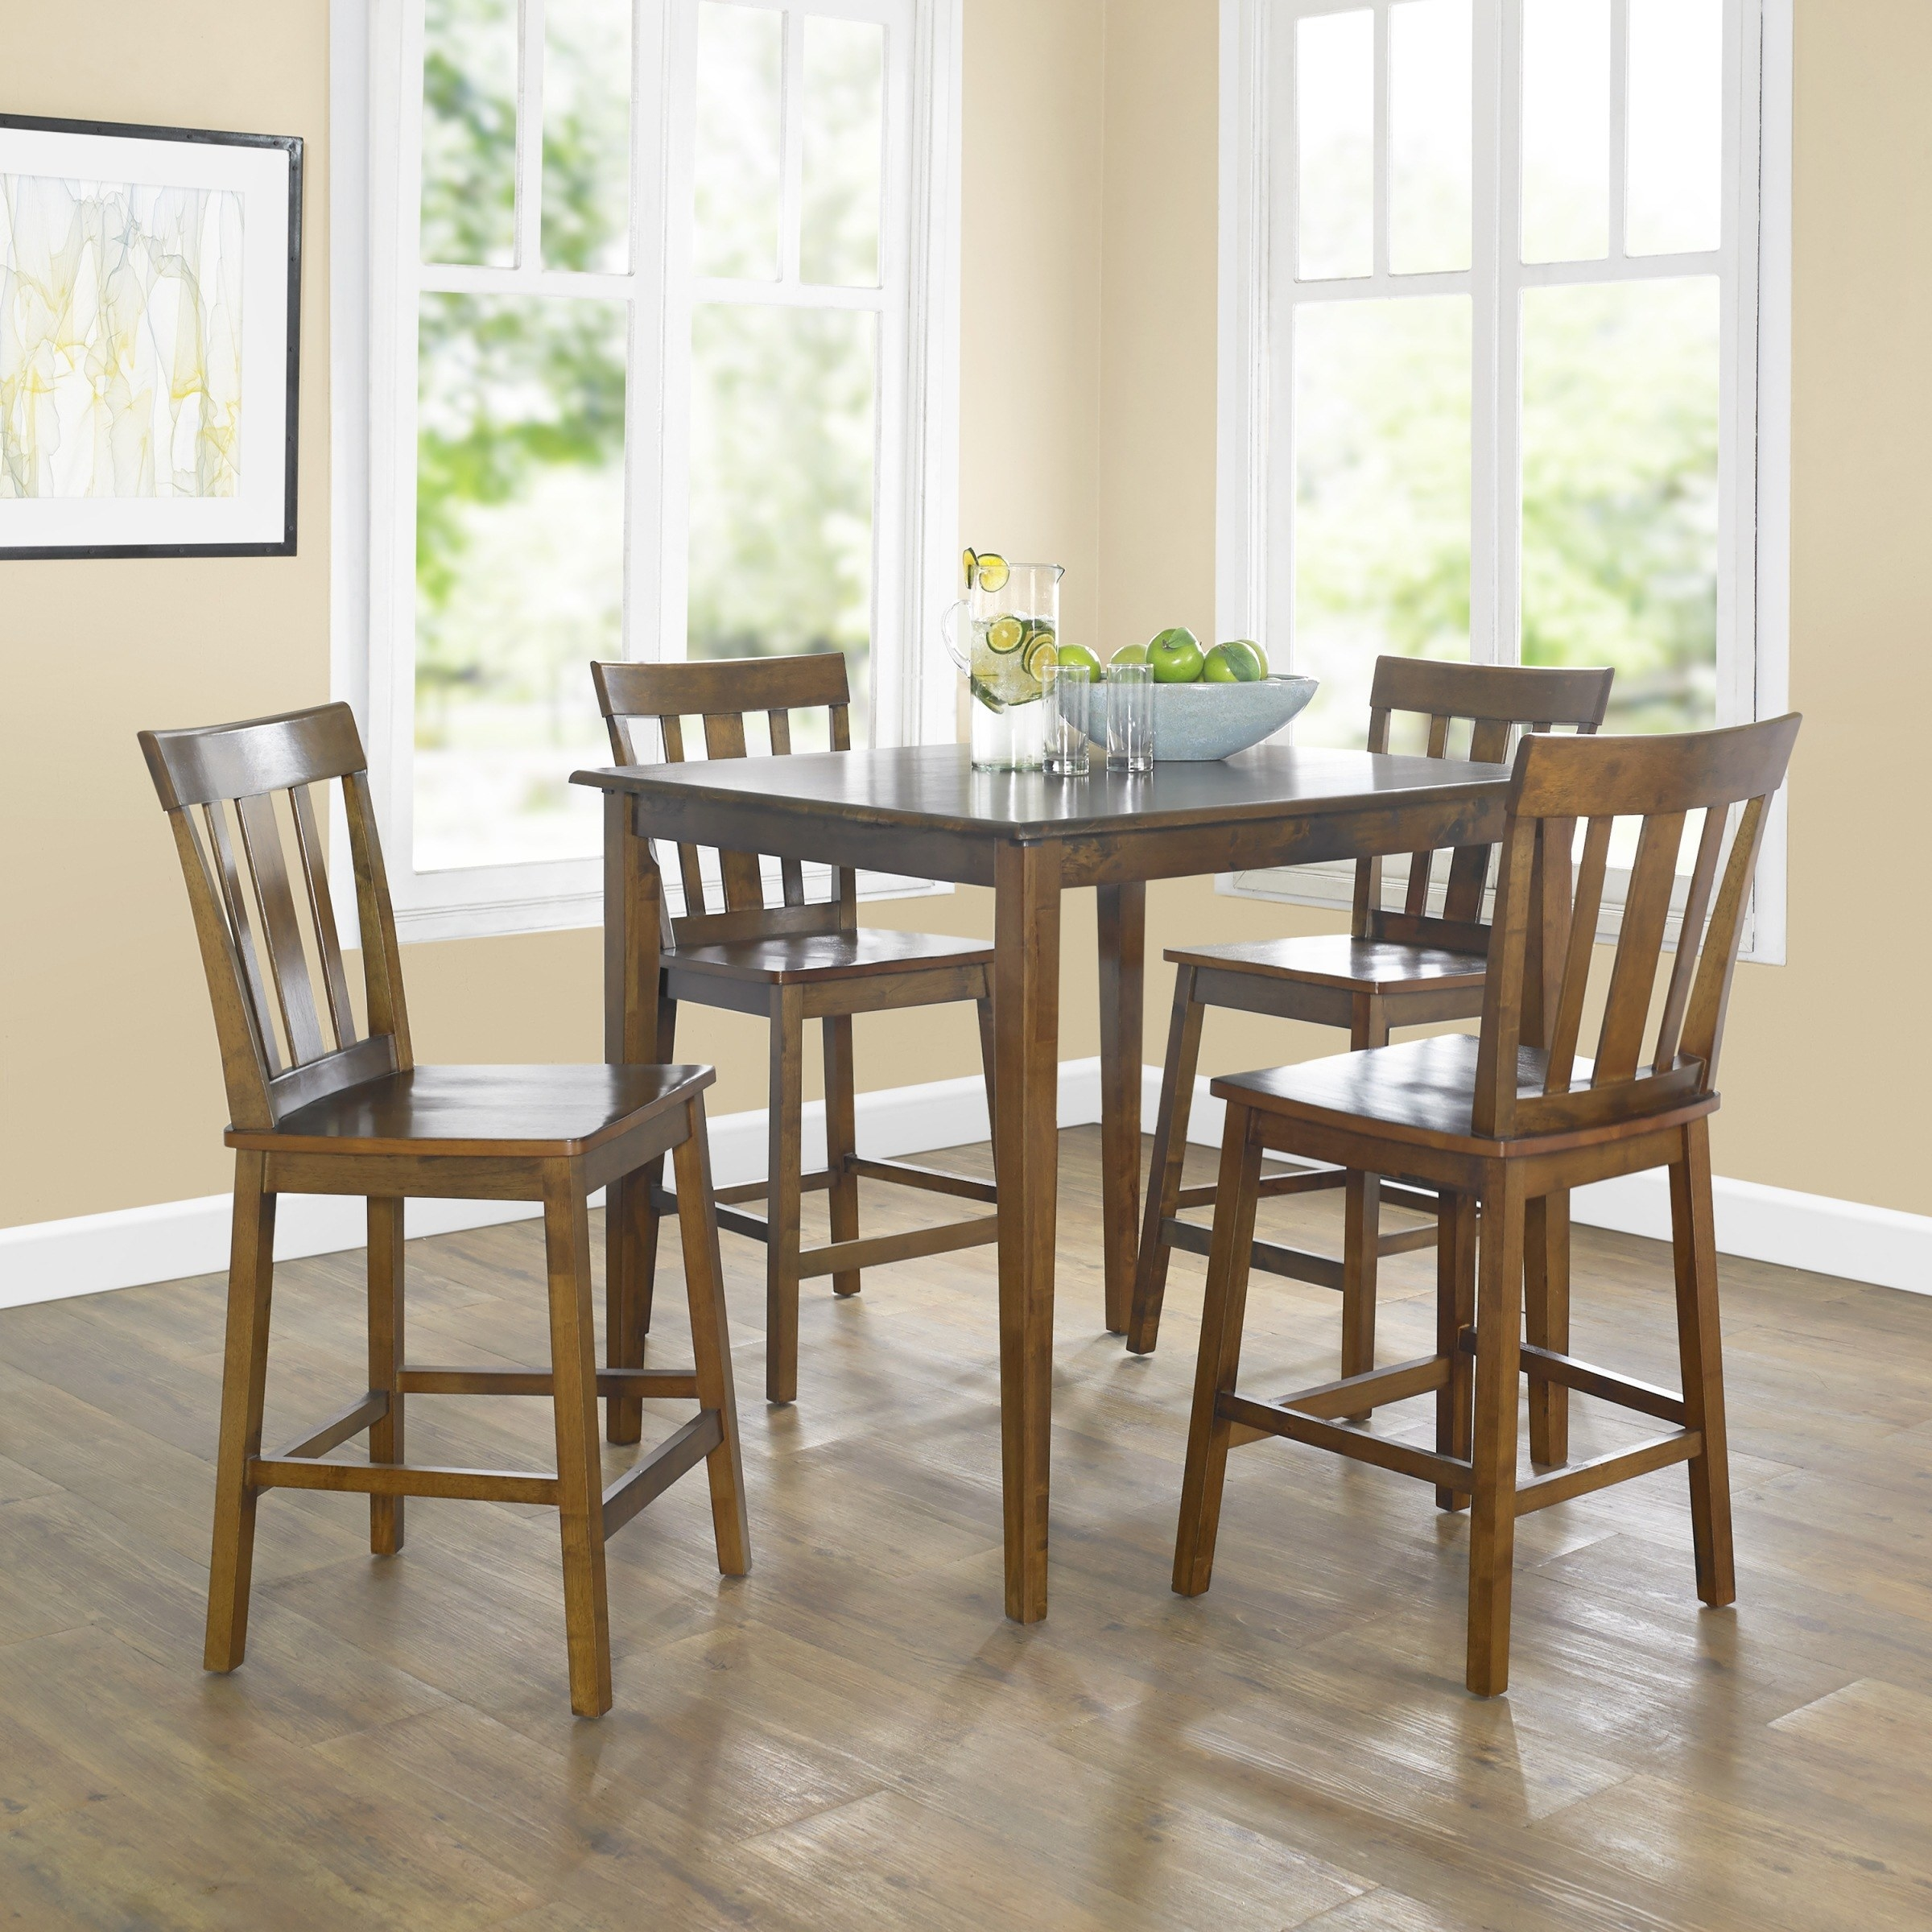 dining chairs and table in a dining room